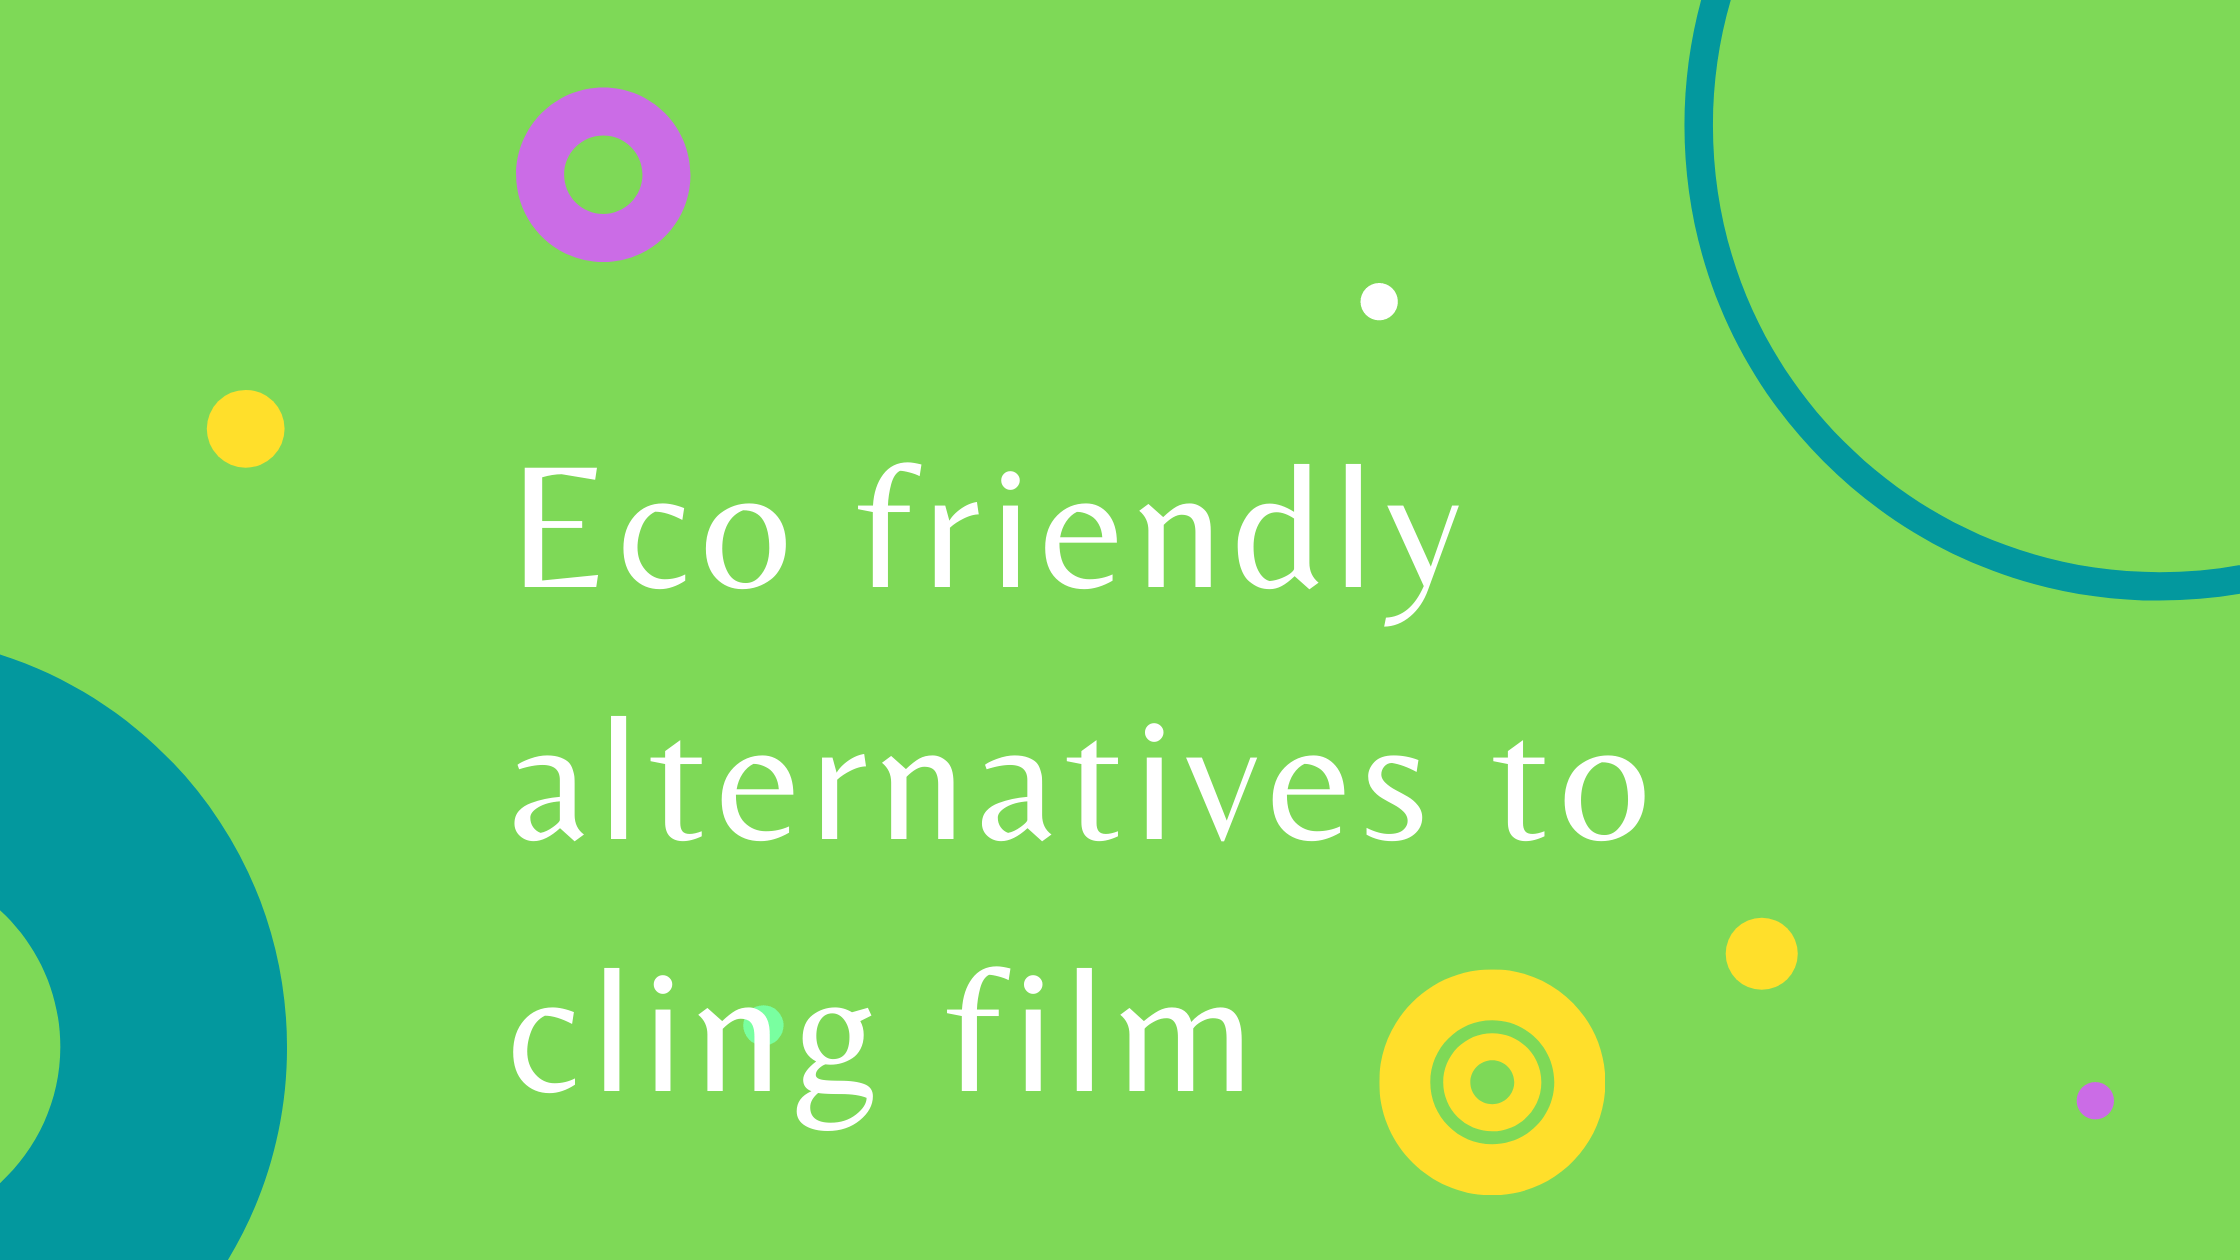 What are more eco friendly alternatives to cling film?